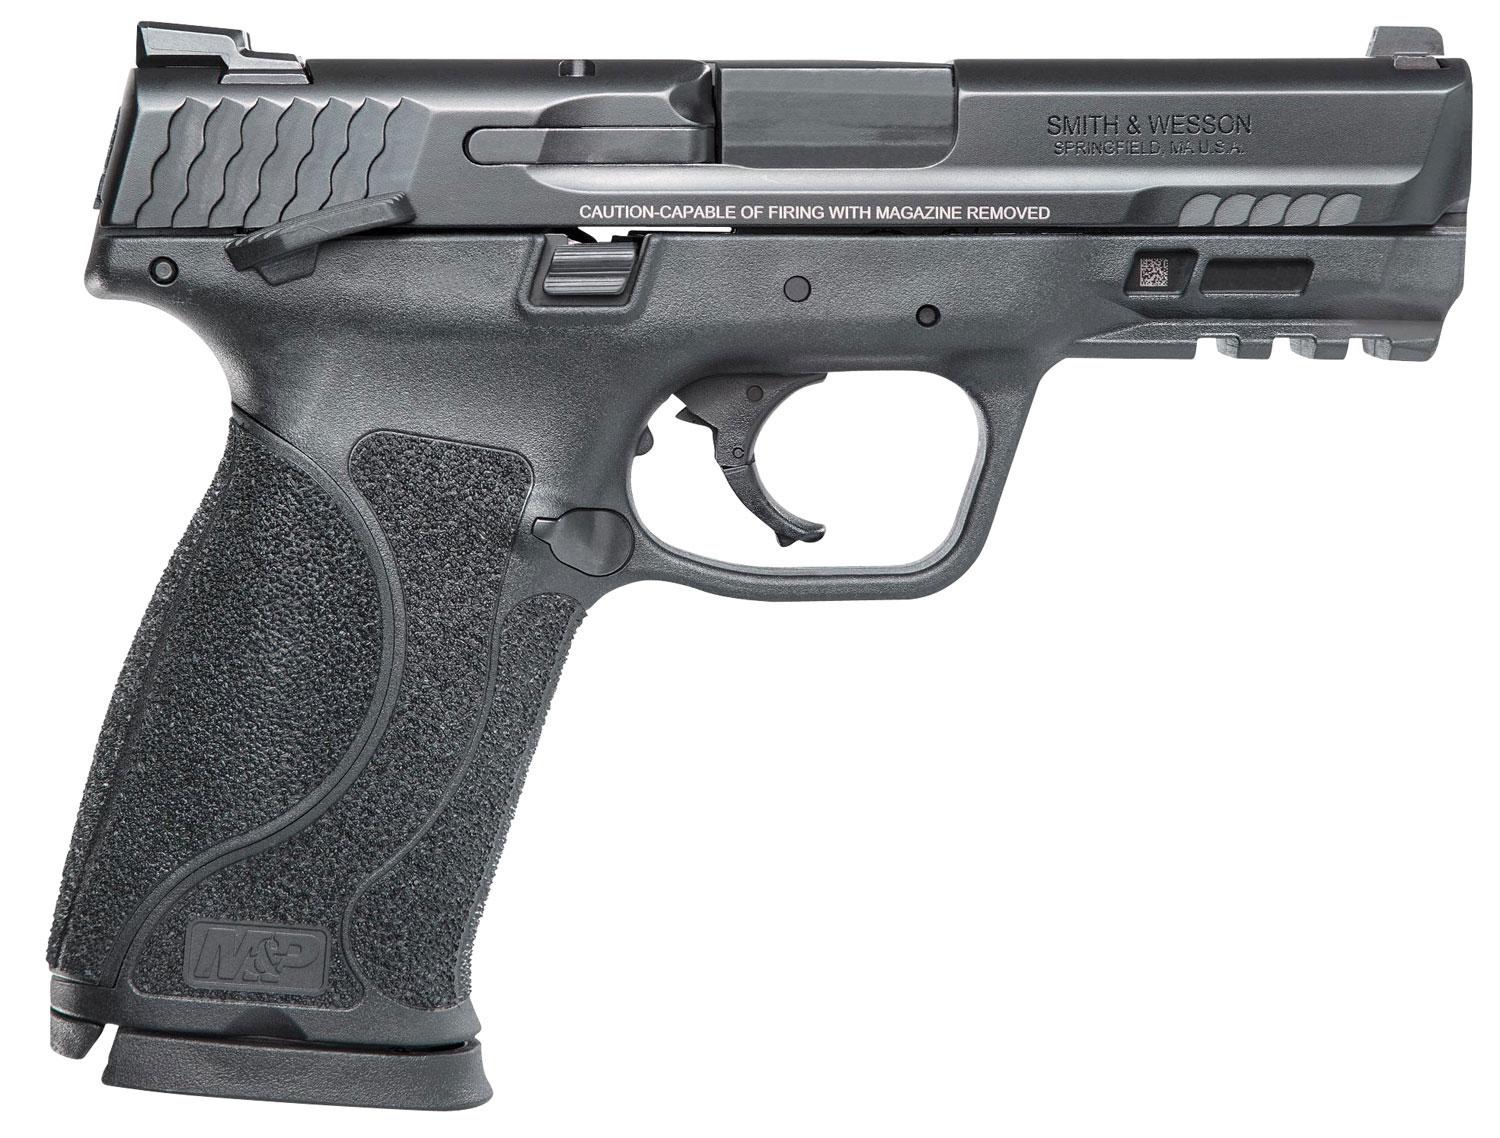 Smith & Wesson 12105 M&P 45 M2.0 Compact 45 ACP Double 4